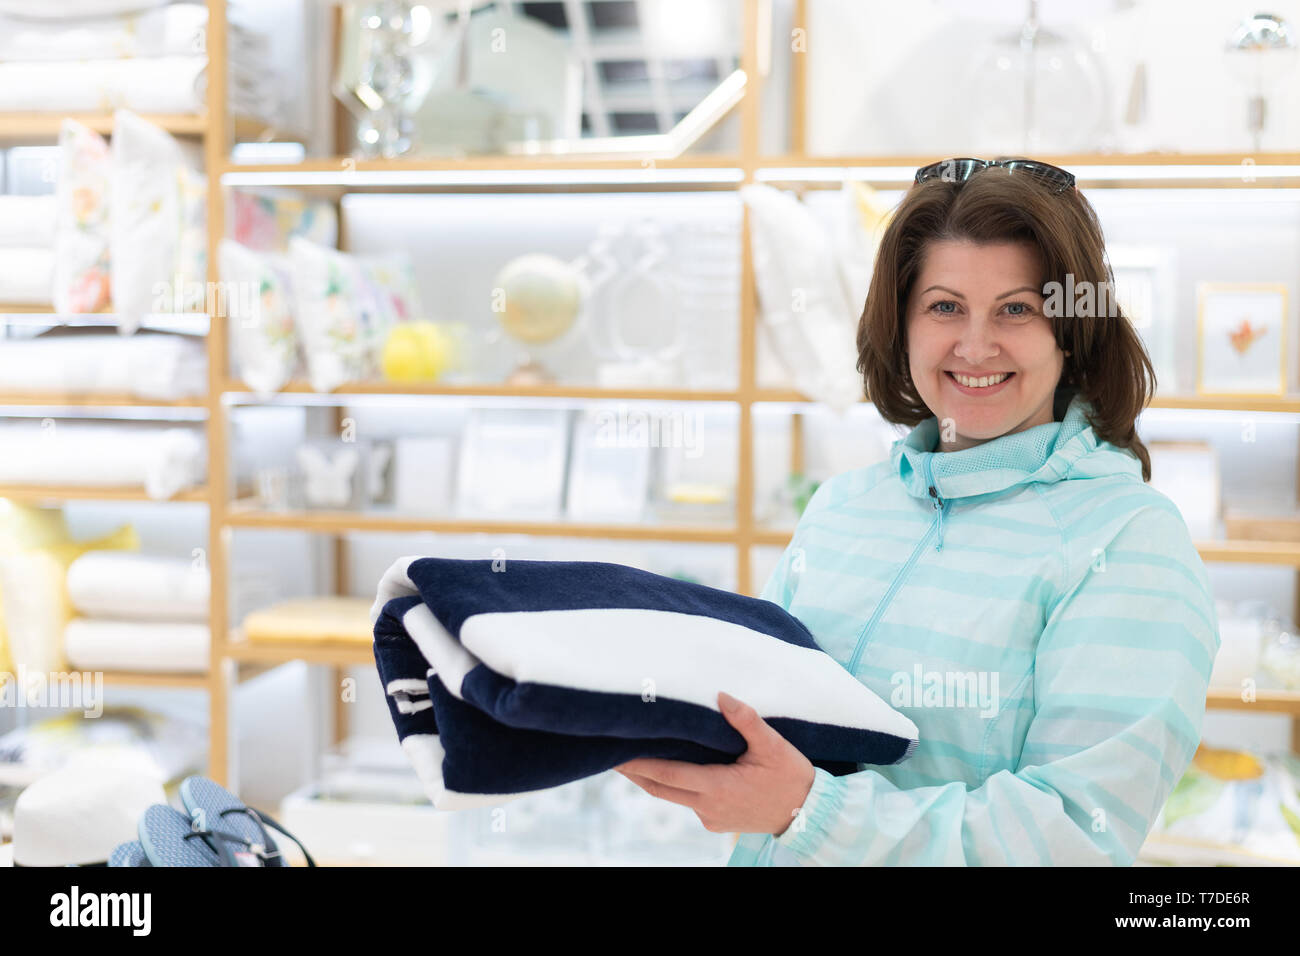 The woman chooses a towel in the store - Stock Image